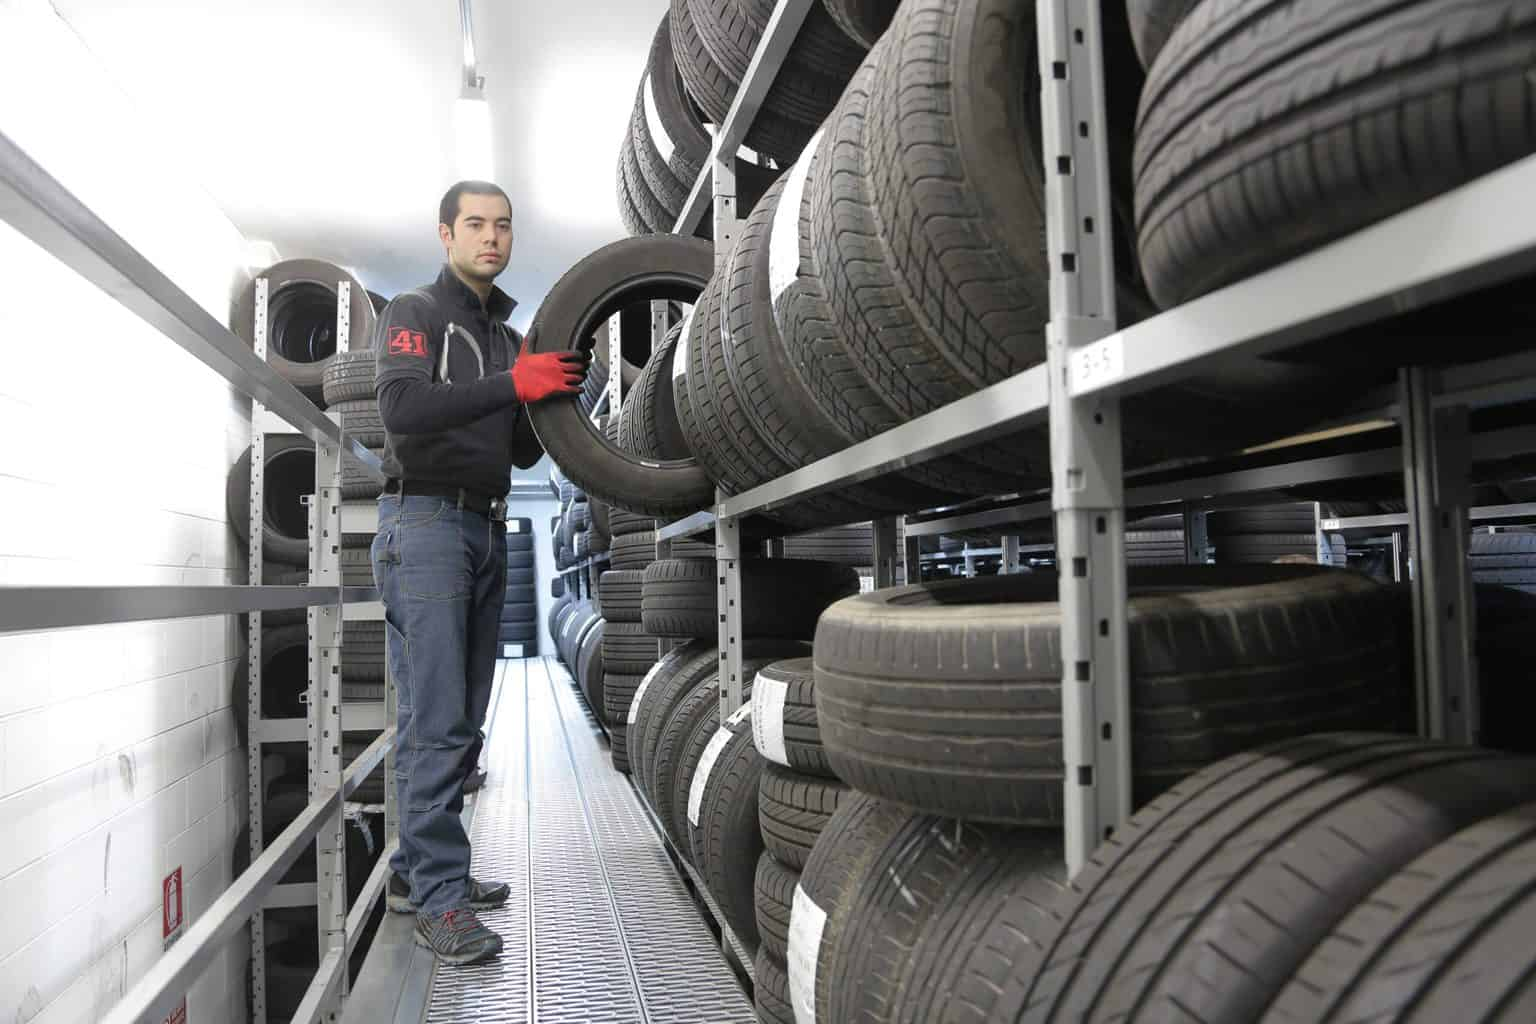 A man with a rack of tires